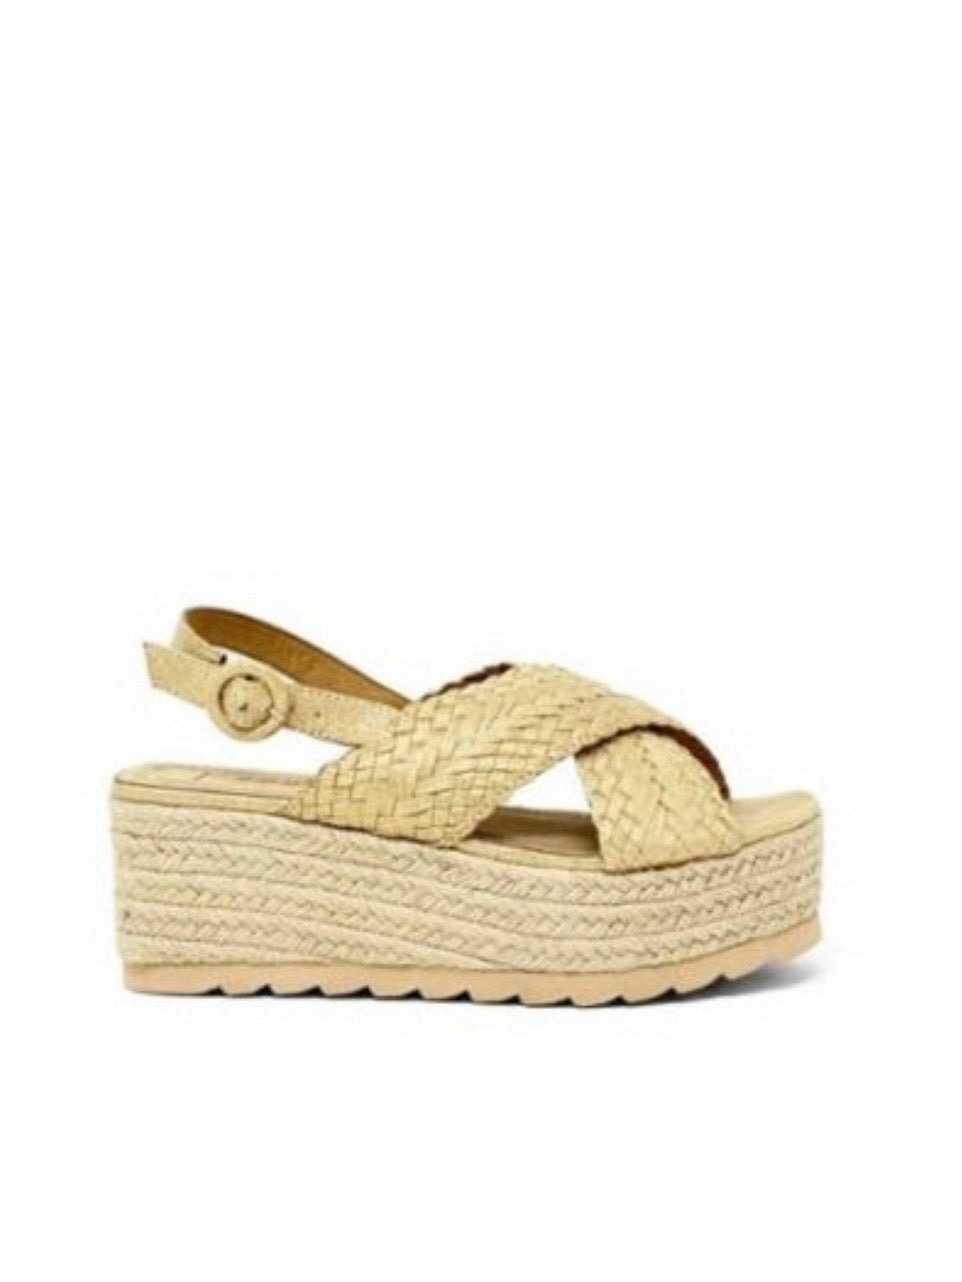 Platform Espadrille Wedge Sandals